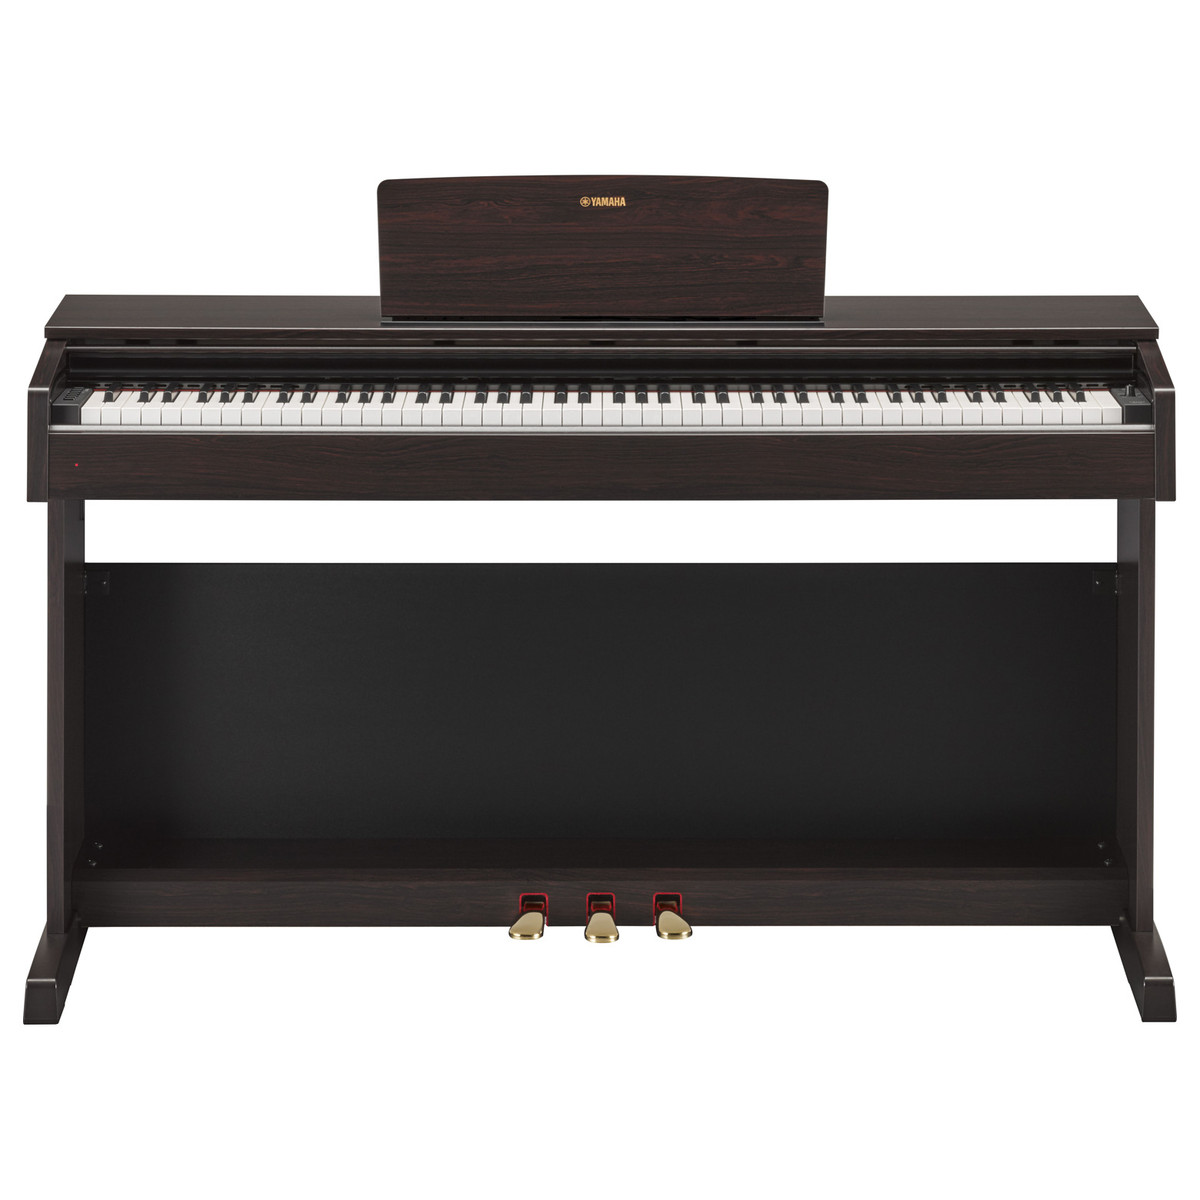 yamaha ydp 143 digital piano dark rosewood at gear4music. Black Bedroom Furniture Sets. Home Design Ideas